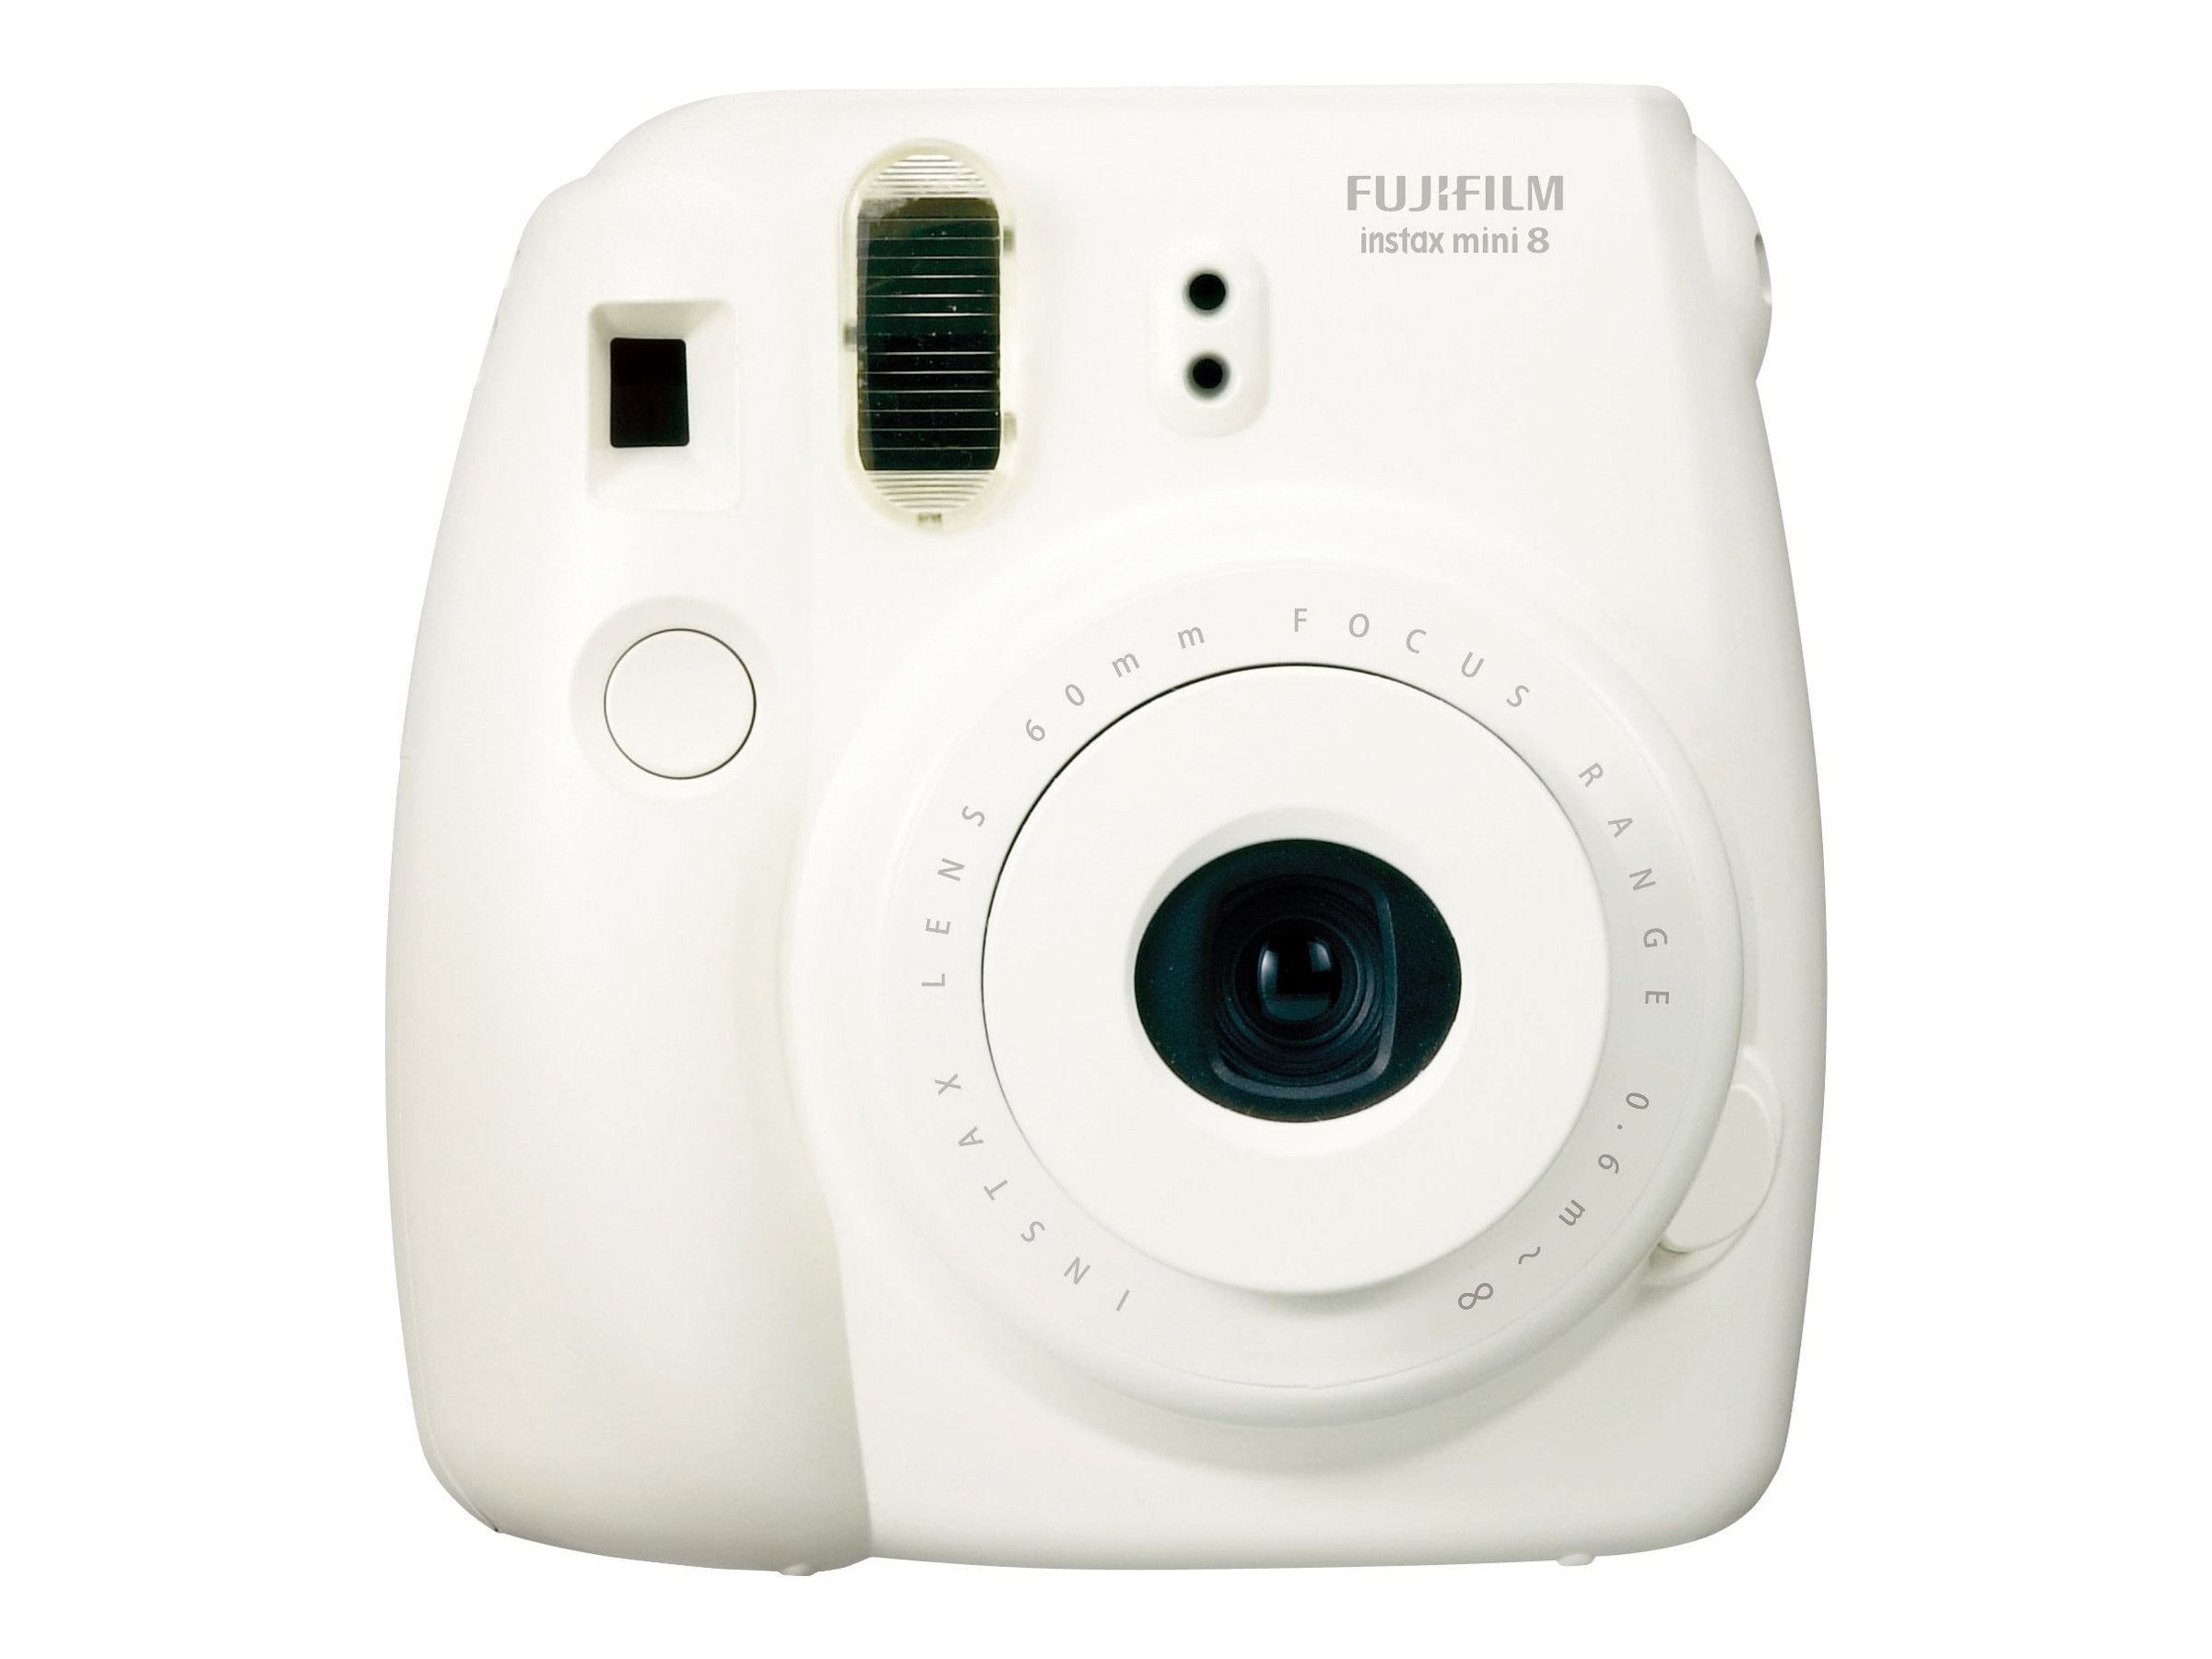 Fujifilm Instax Mini 8 Camera, White, 16273398